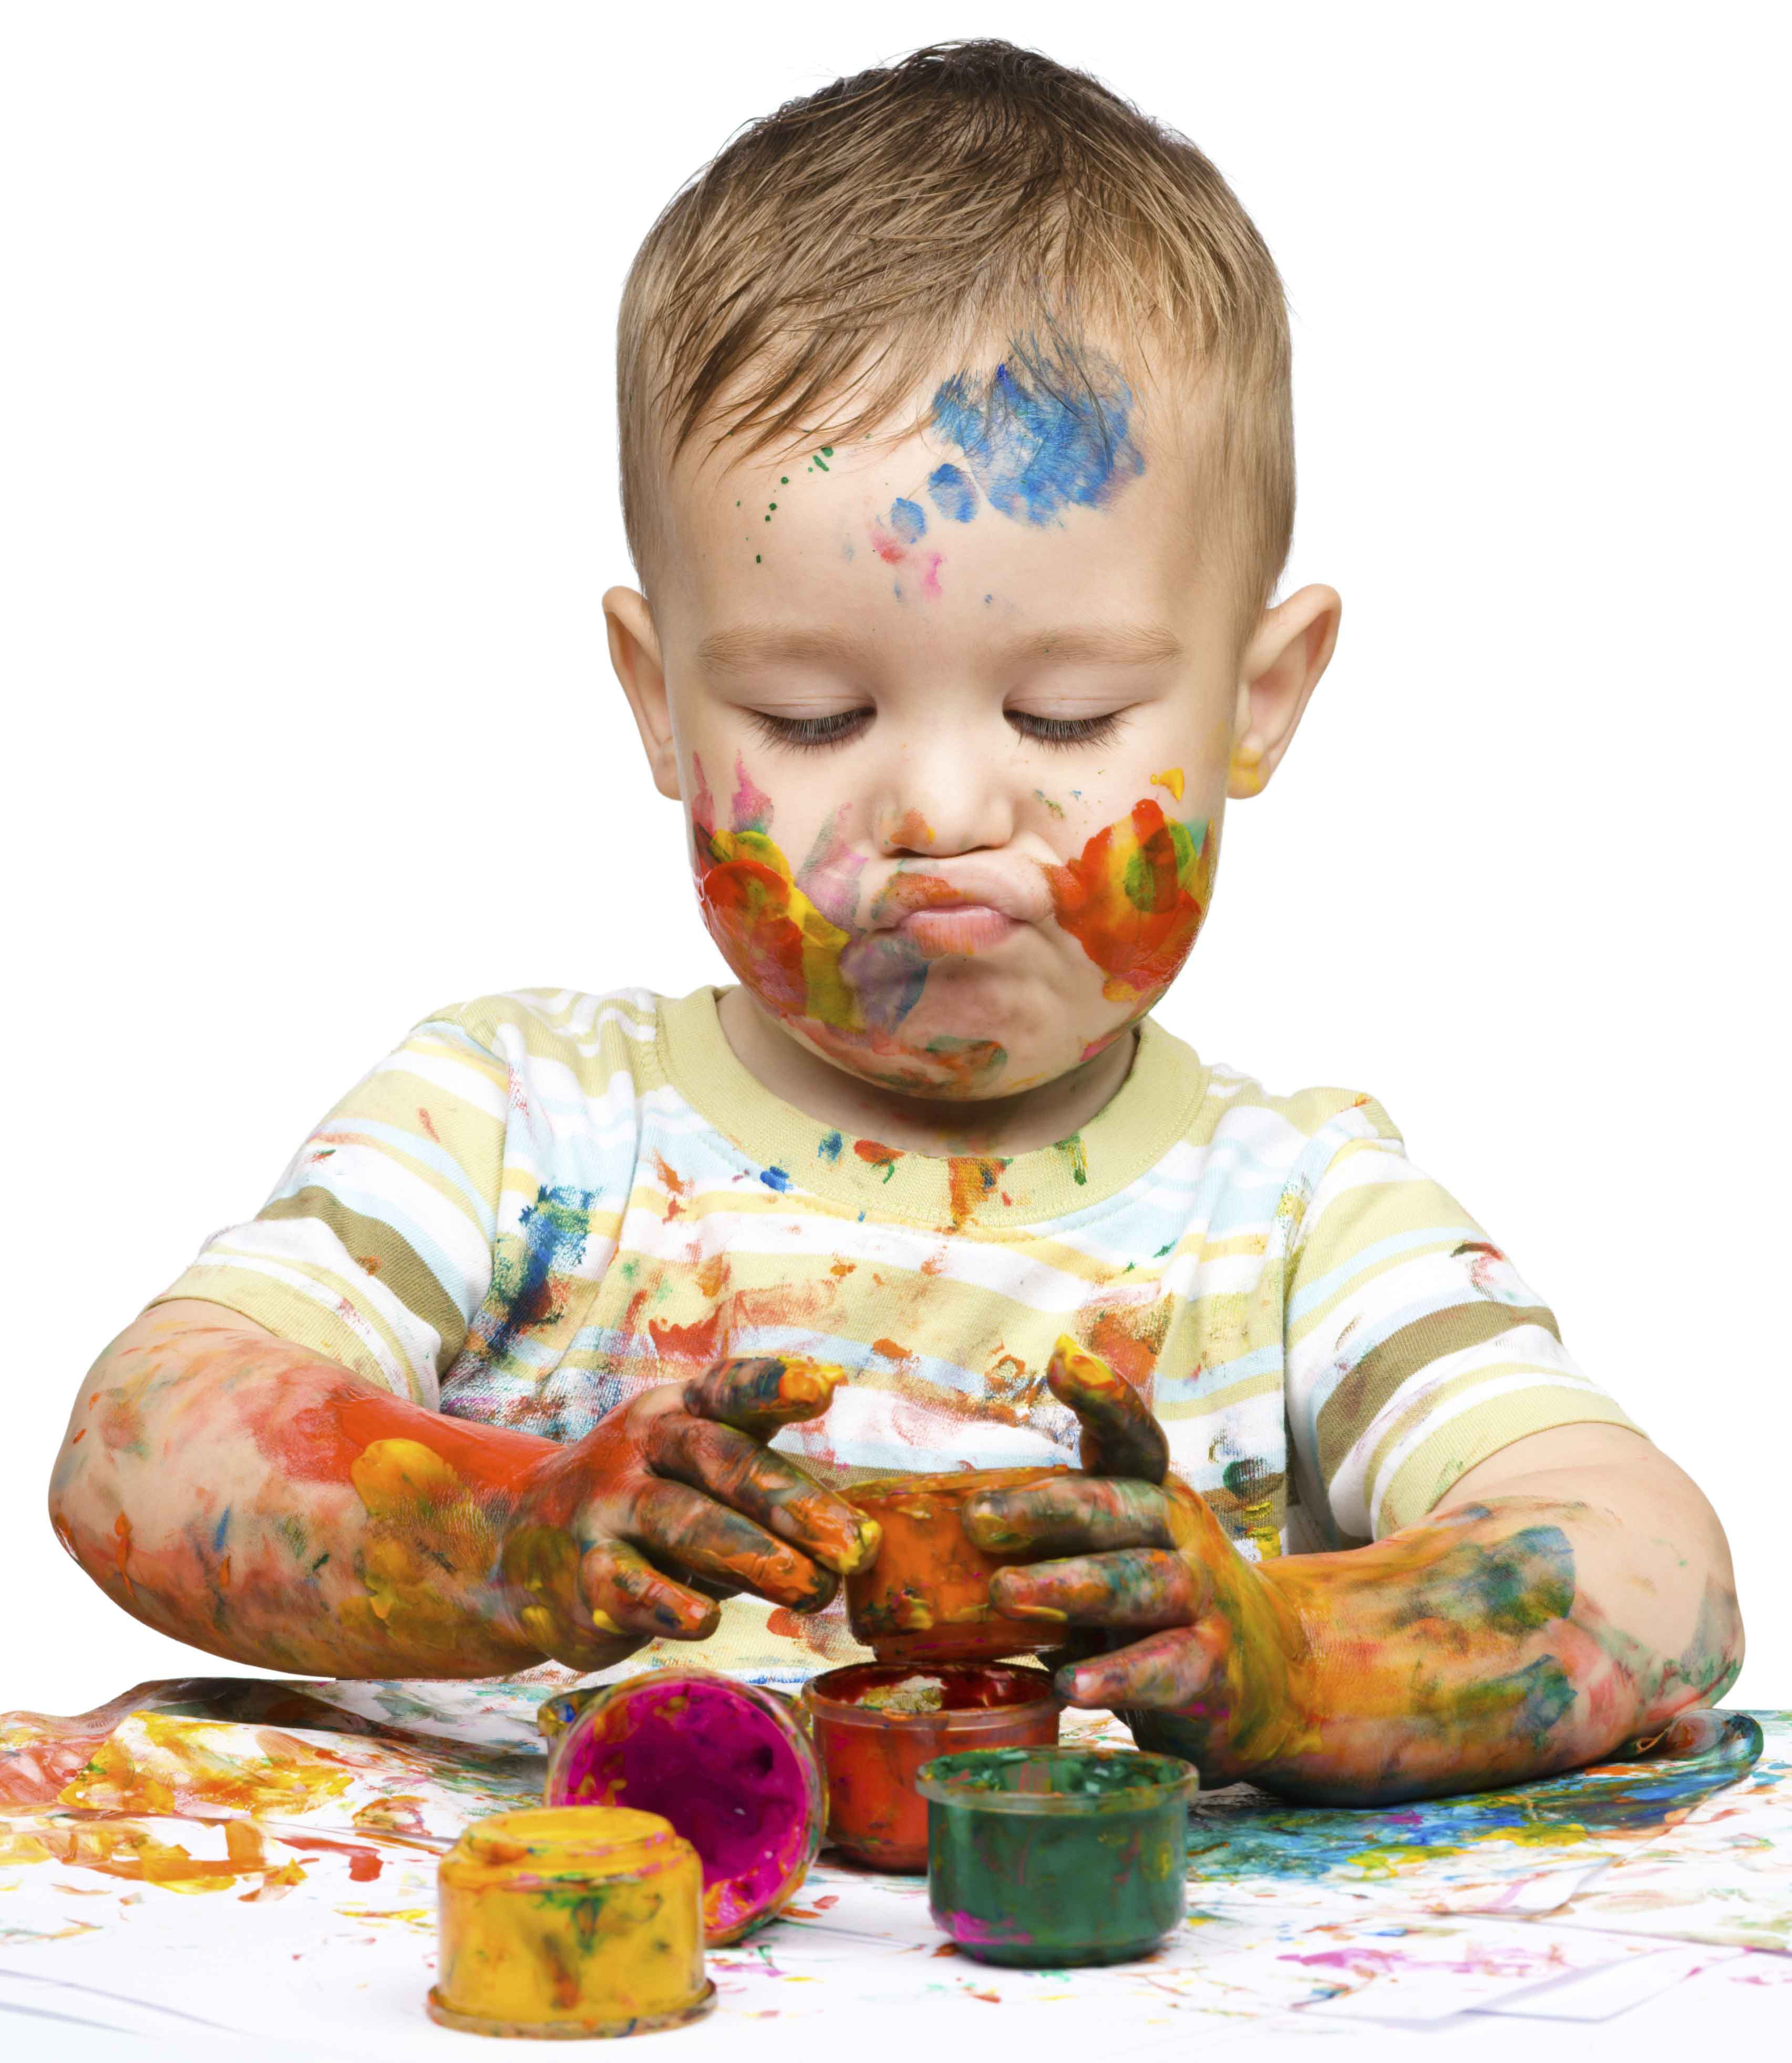 Sensory processing; boy playing with paints